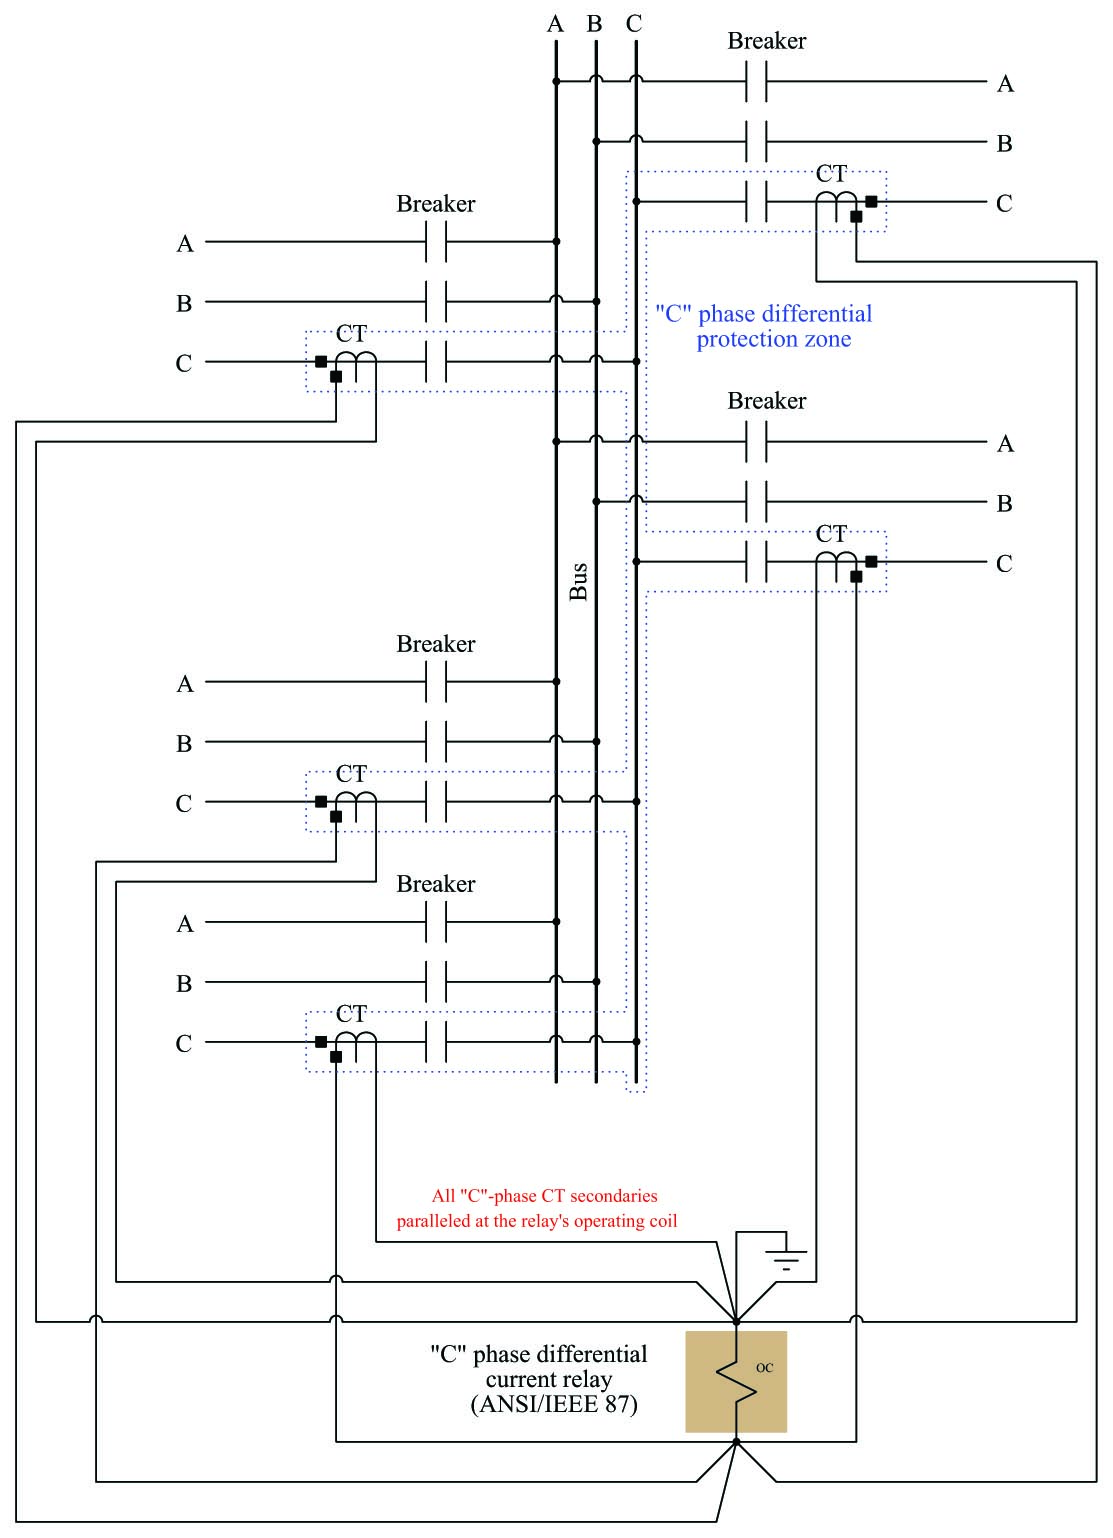 [DIAGRAM_38ZD]  Protective Relay Wiring Diagram For Ge - 1 Way Lighting Wiring Diagram -  delco-electronics.yenpancane.jeanjaures37.fr | Protective Relay Wiring Diagram For Ge |  | Wiring Diagram Resource